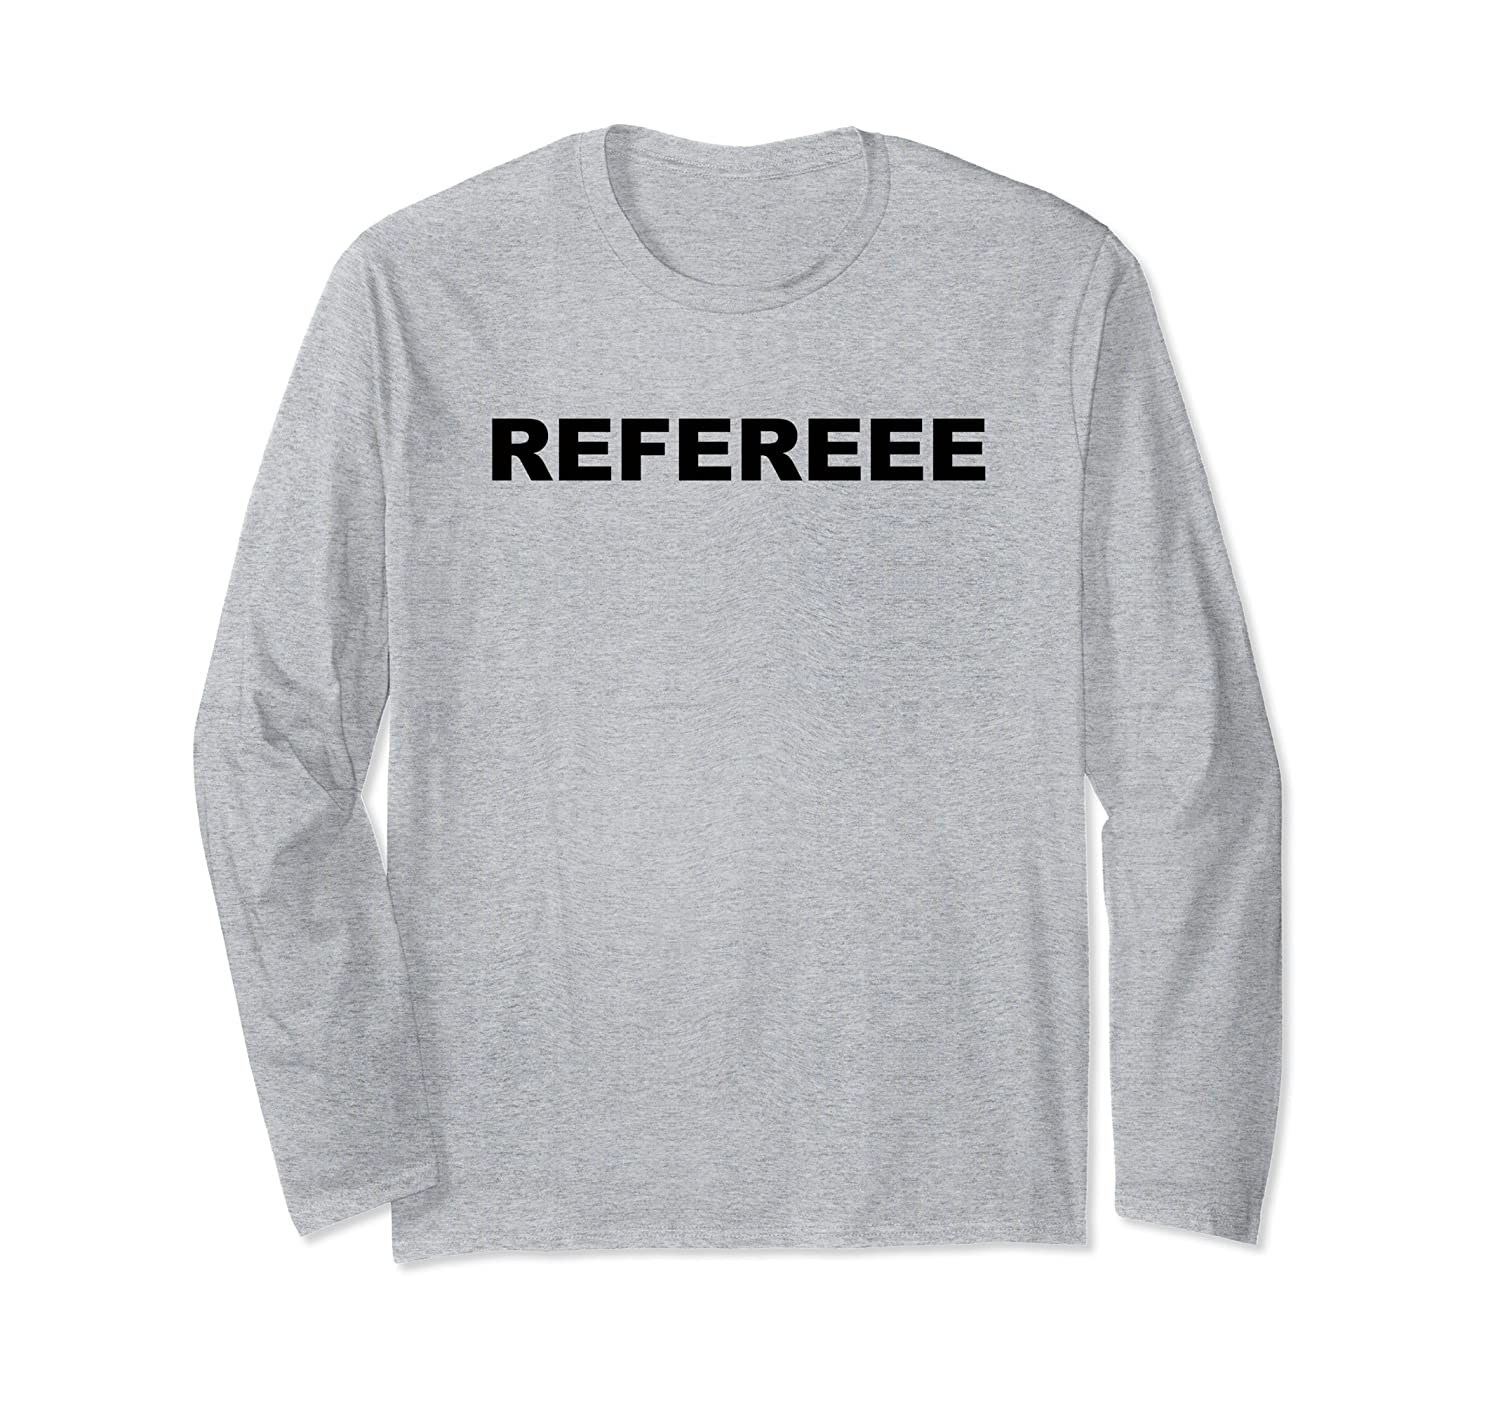 Simple Sports Referee / Ref Long Sleeve Shirt for Officials-alottee gift